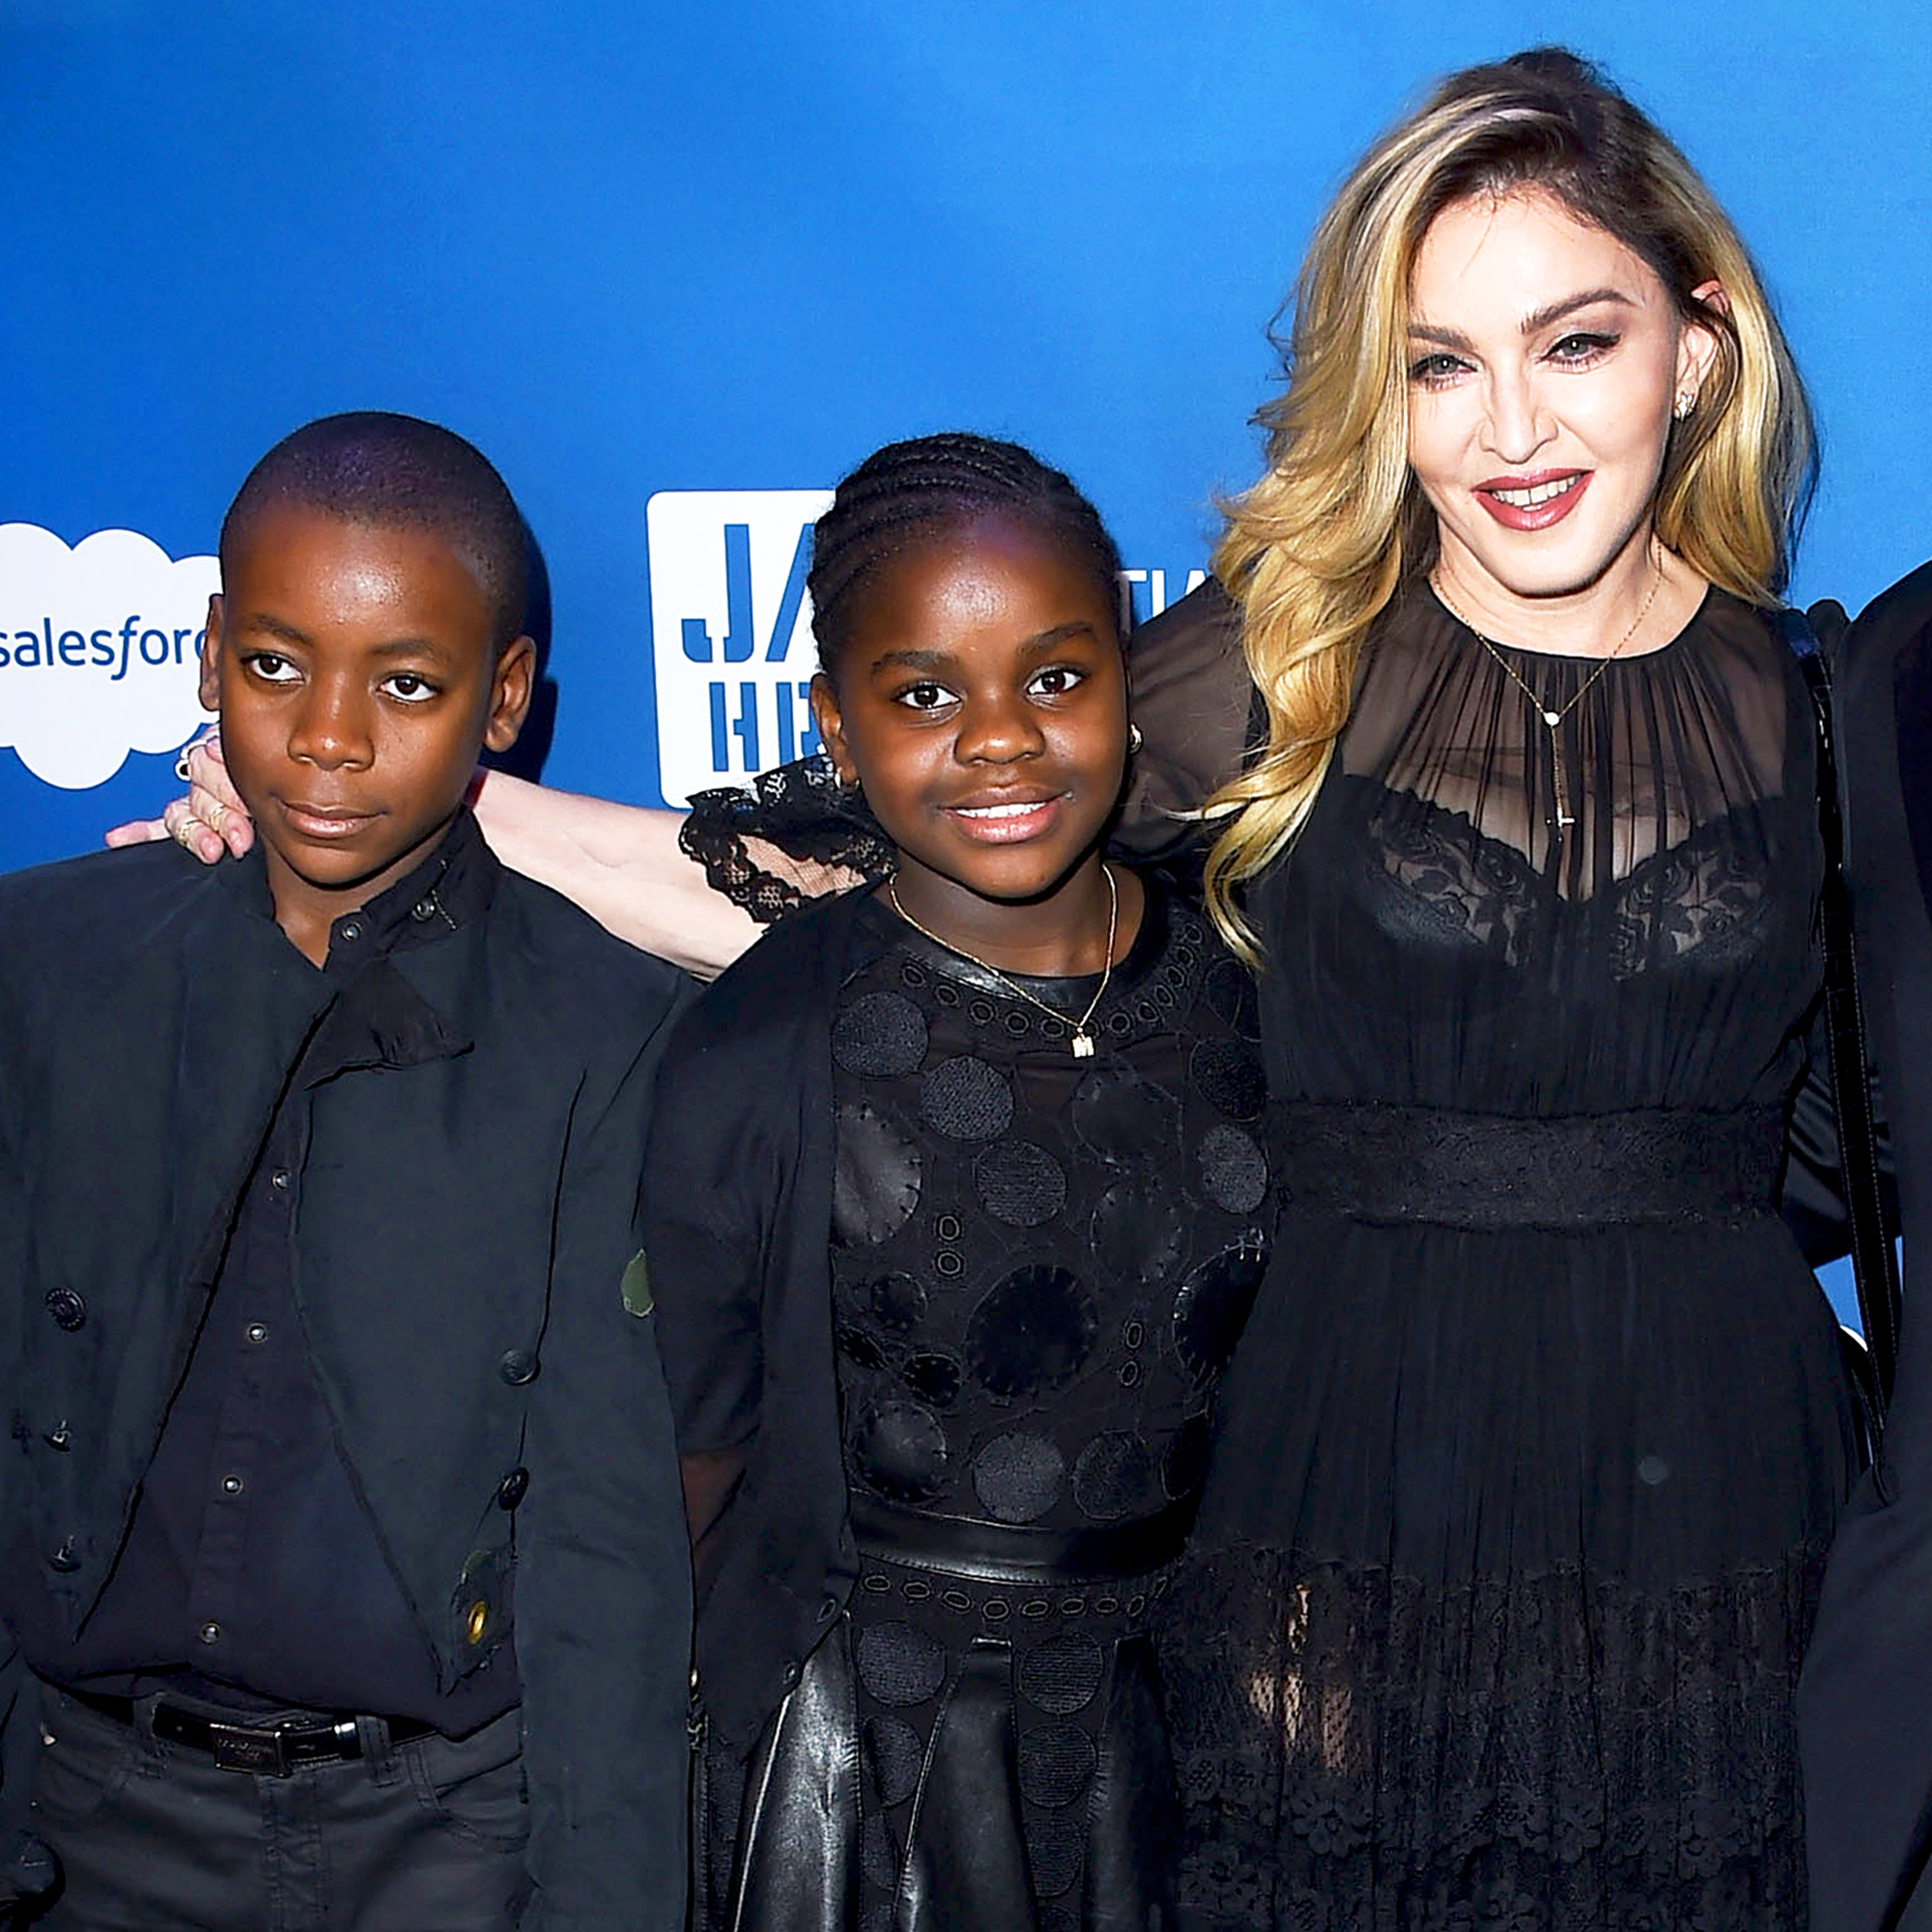 David, Mercy and Madonna